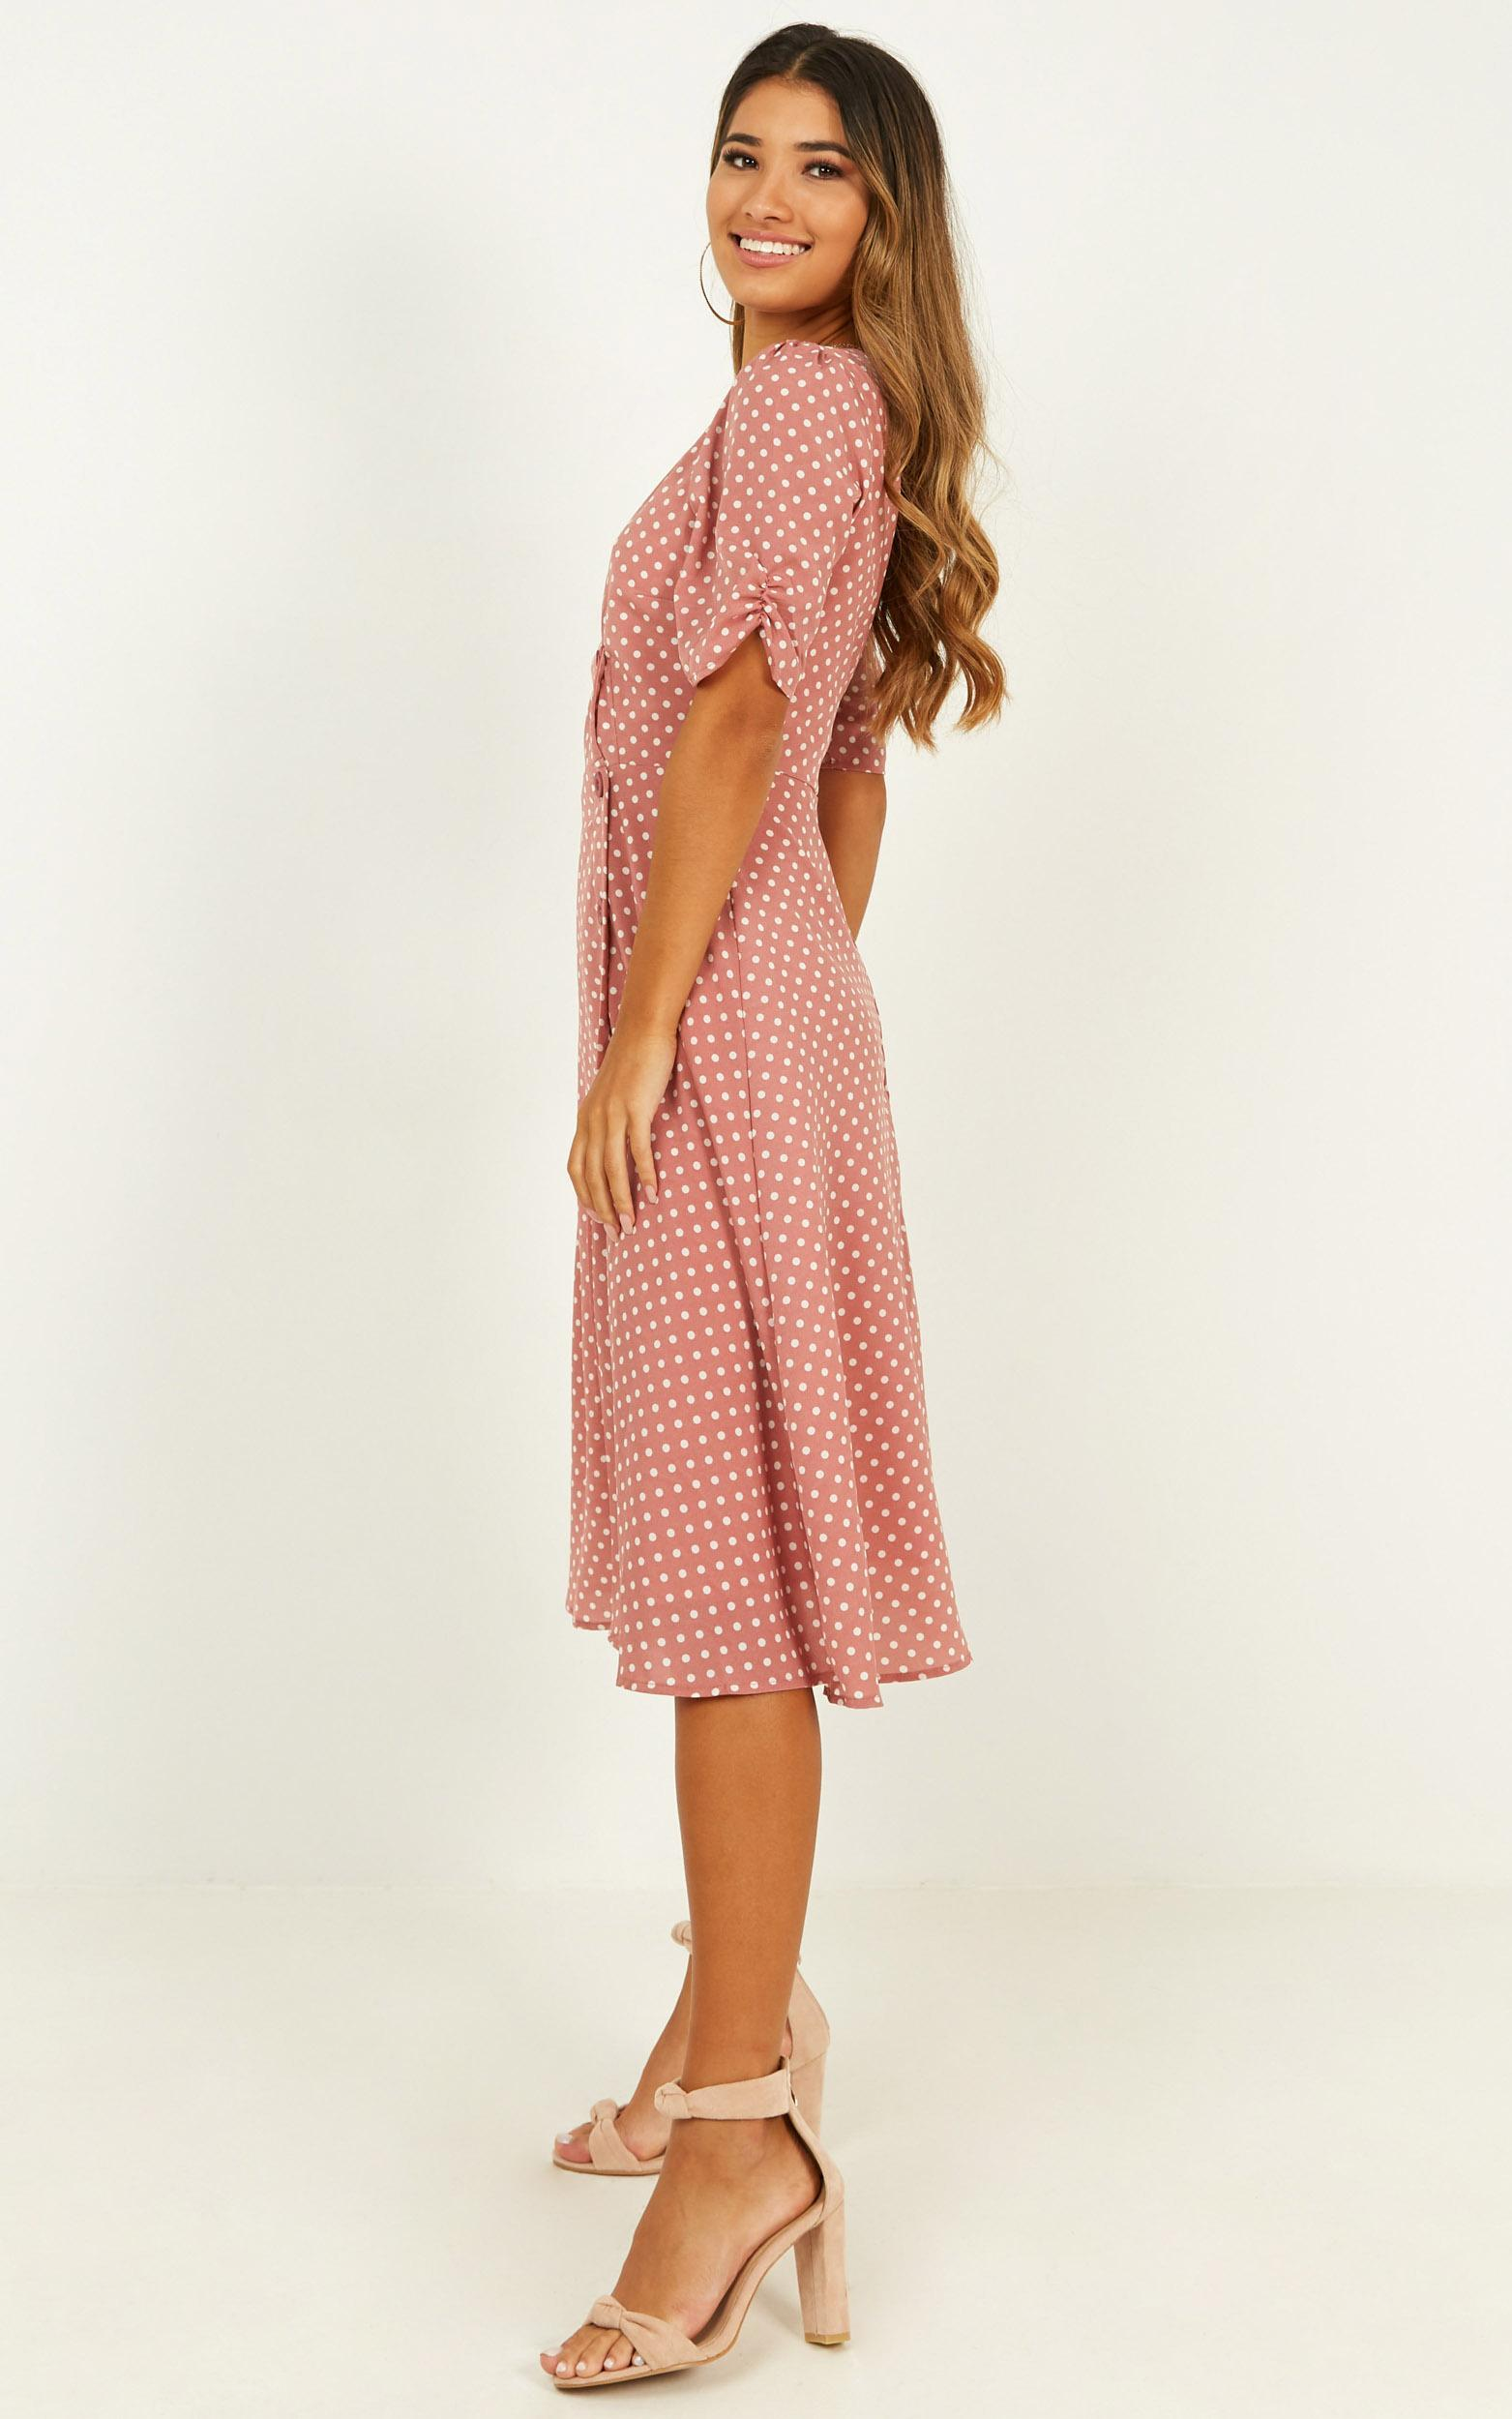 Yesterdays Story Dress in blush spot, Blush, hi-res image number null